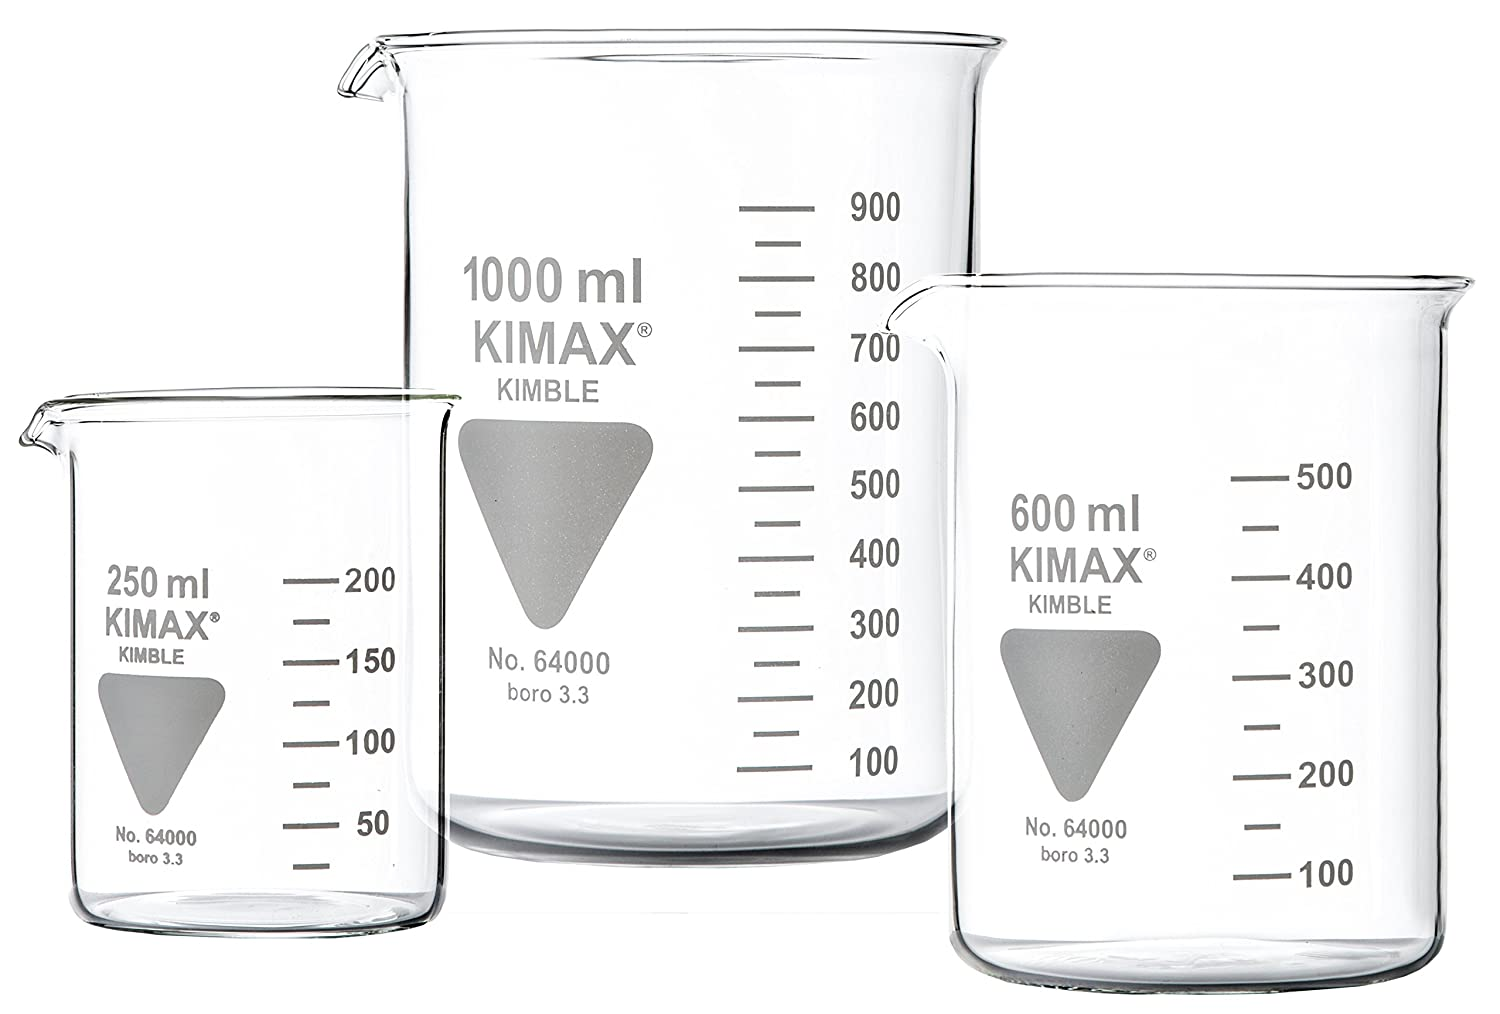 Neolab 0153 1 Cup Glass Low Form With Spout, Kimax Borosilicate Glass 3.3 –  100 ml Kimax Borosilicate Glass 3.3-100ml 1-0153